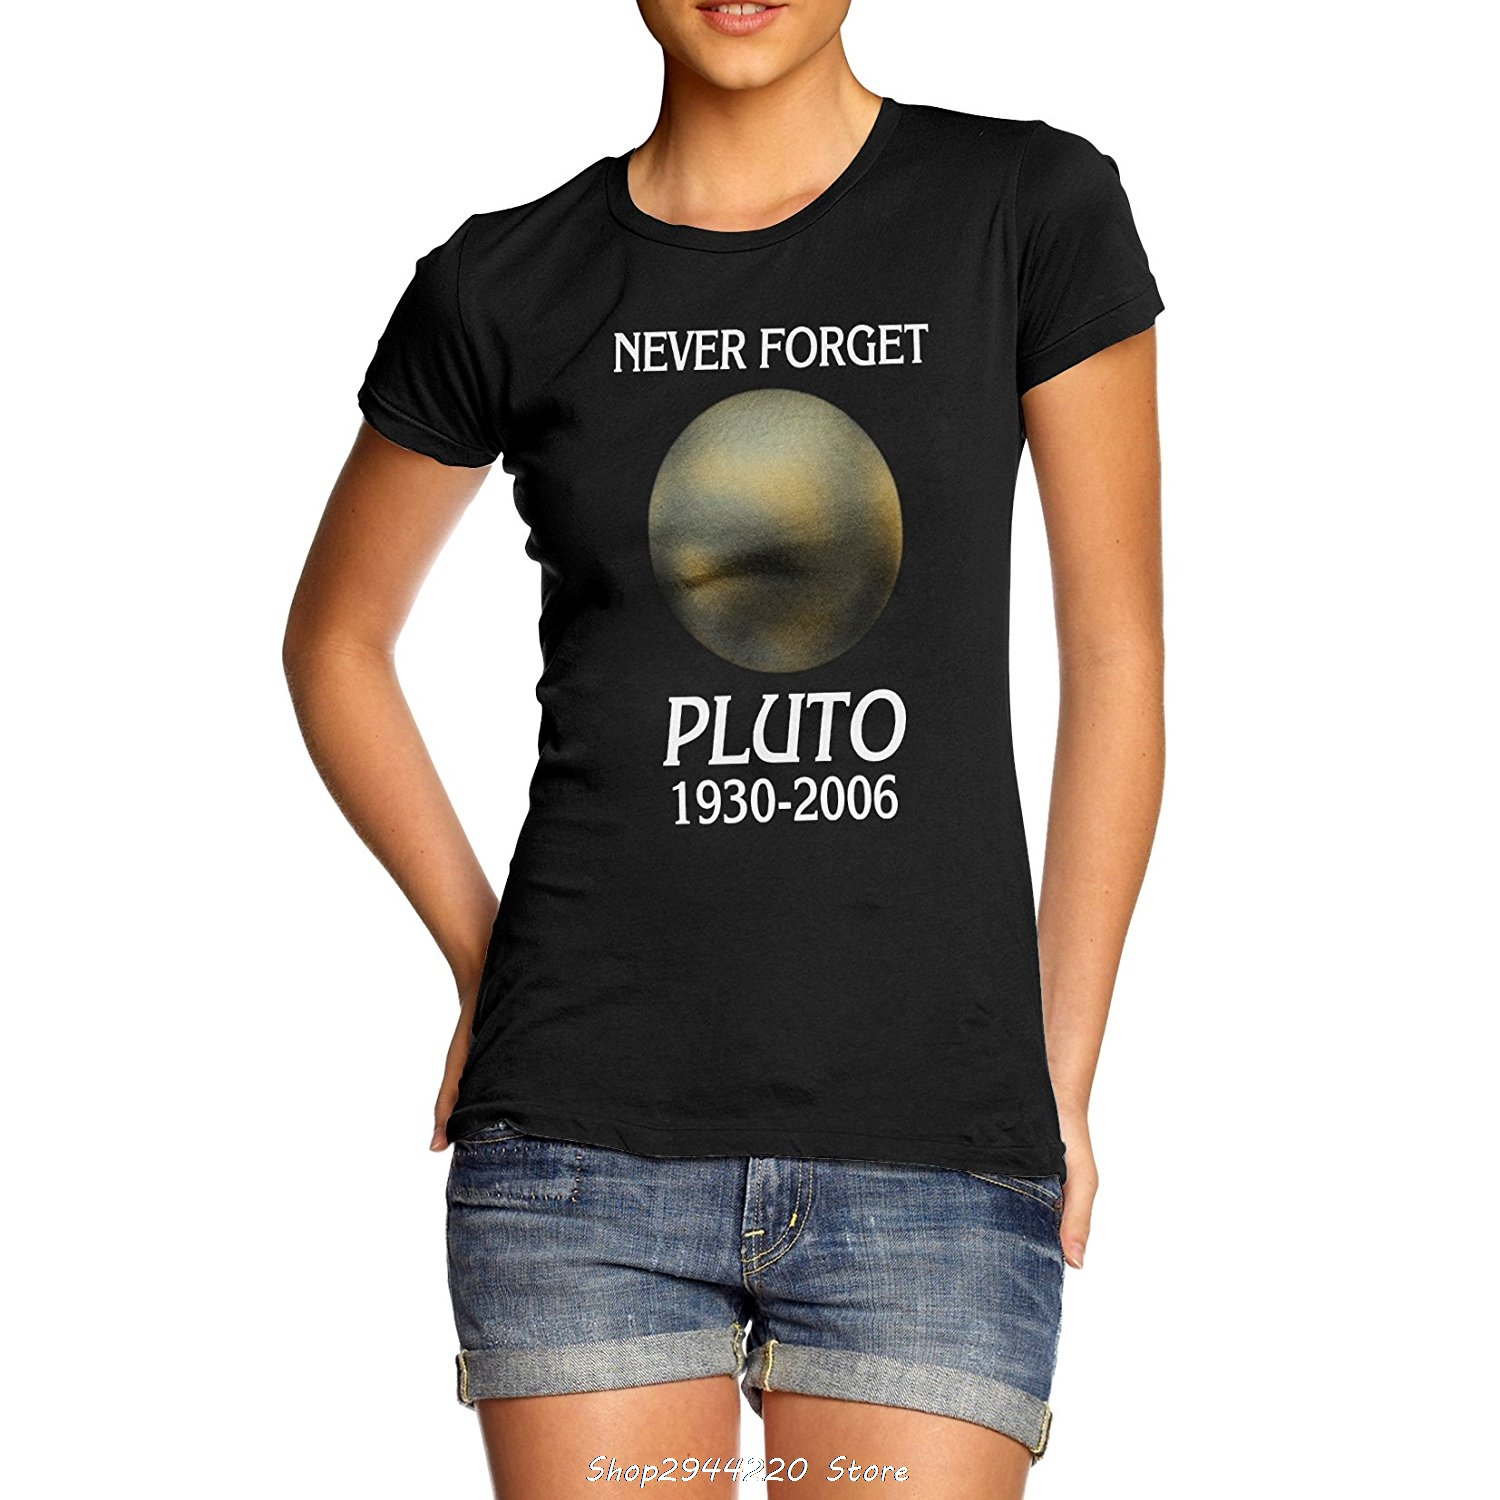 Design your t shirt and sell - Hot Sell Women S Tees Women Cotton Novelty Funny Design Astrology Never Forget Pluto T Shirt